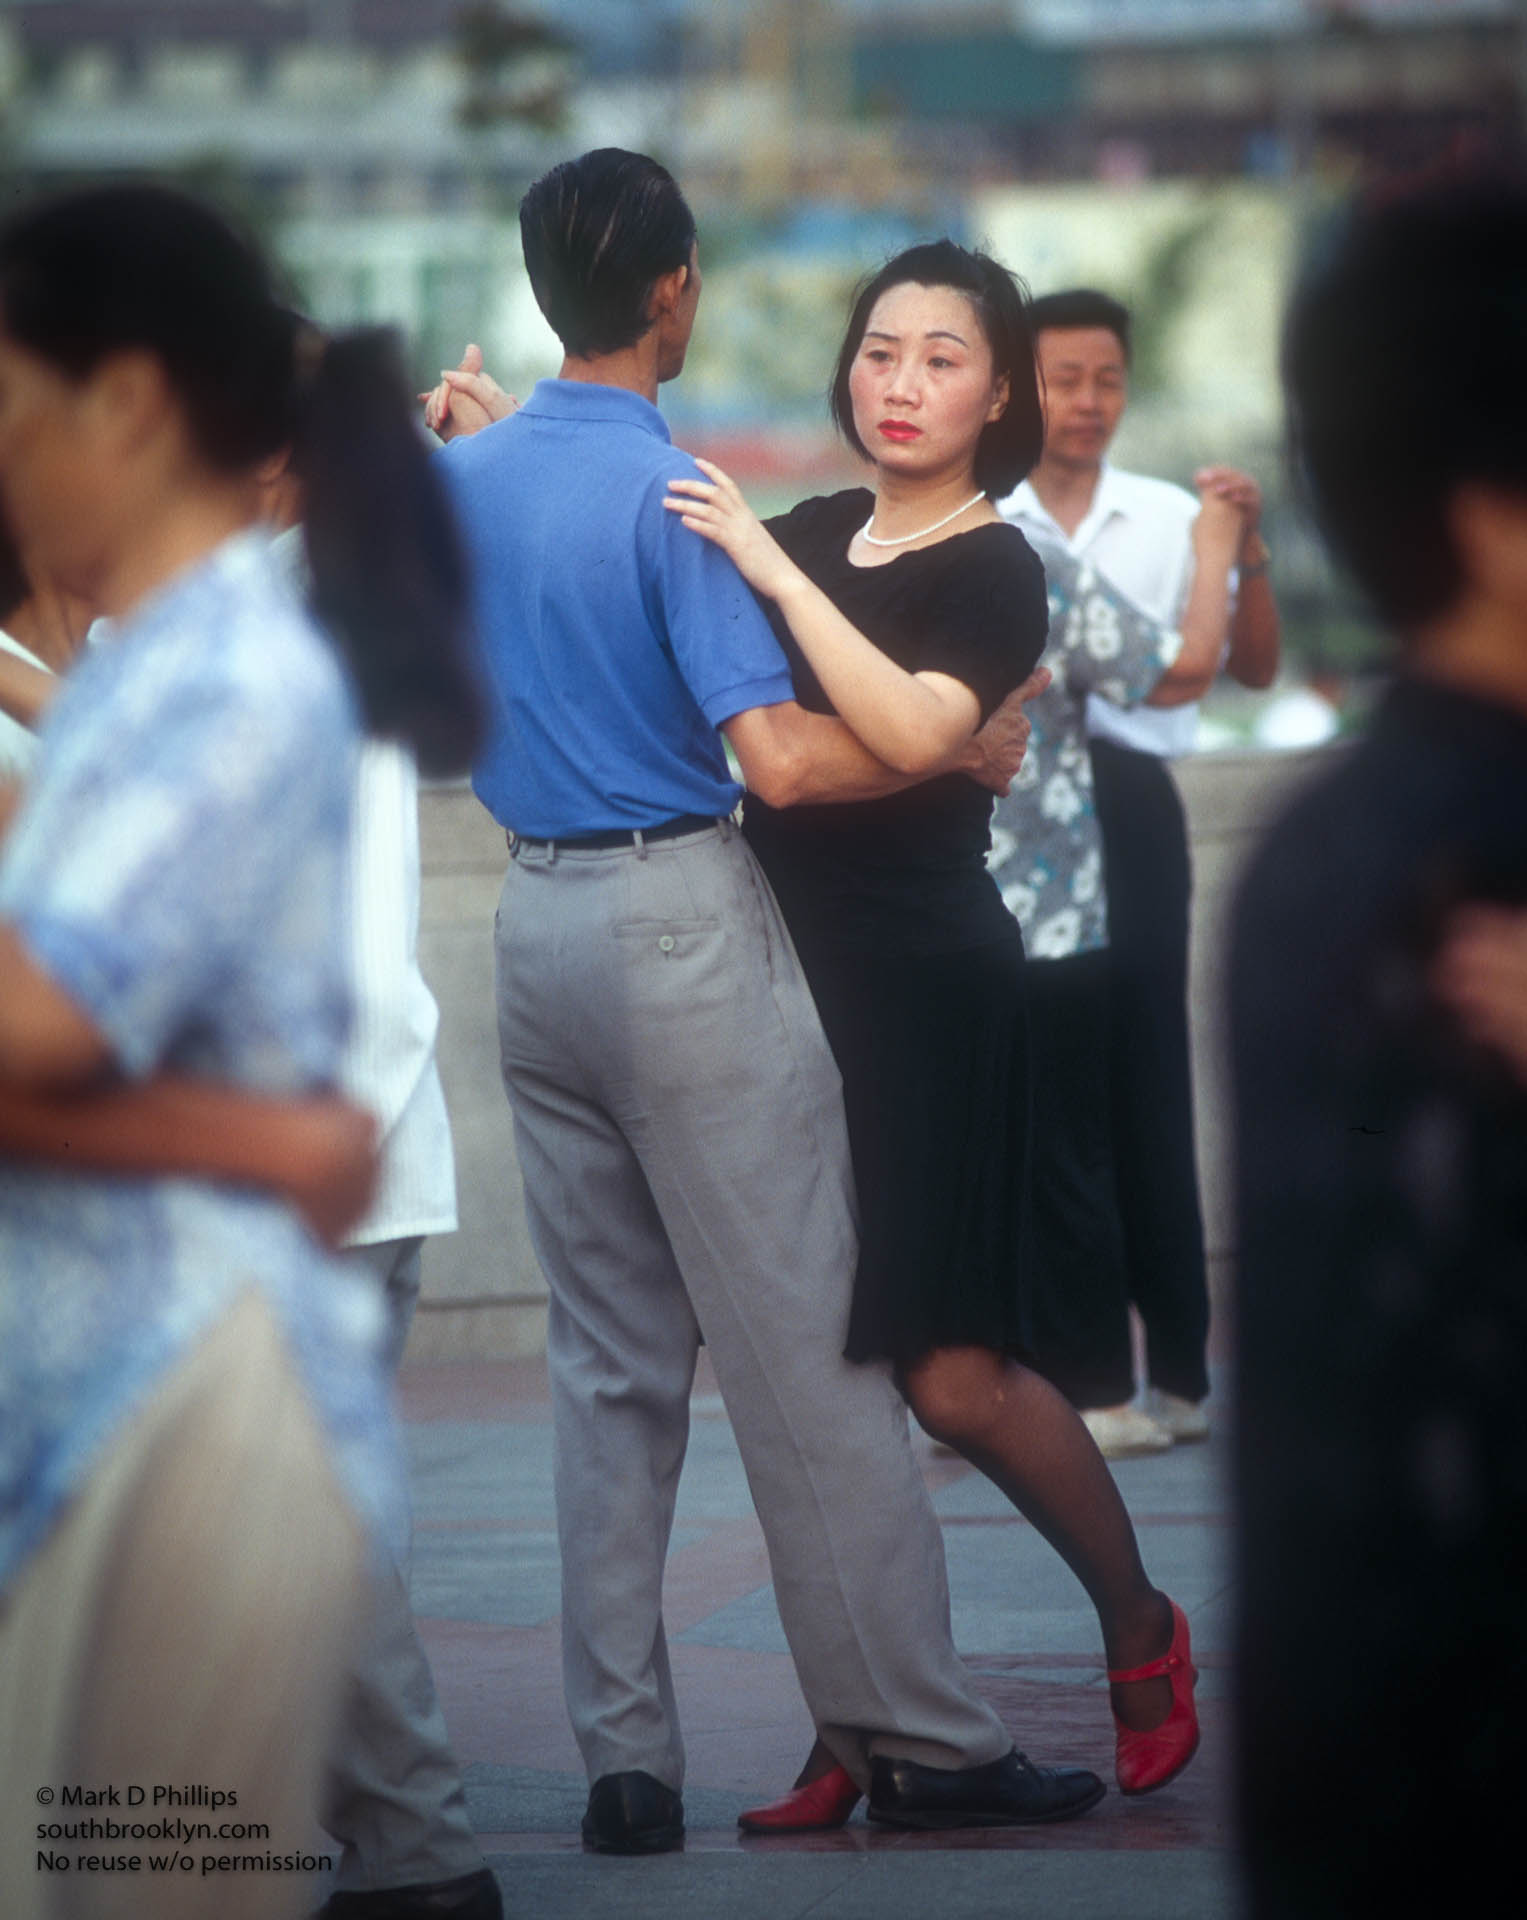 Morning ballroom dancing in a park in Shanghai China in 1996